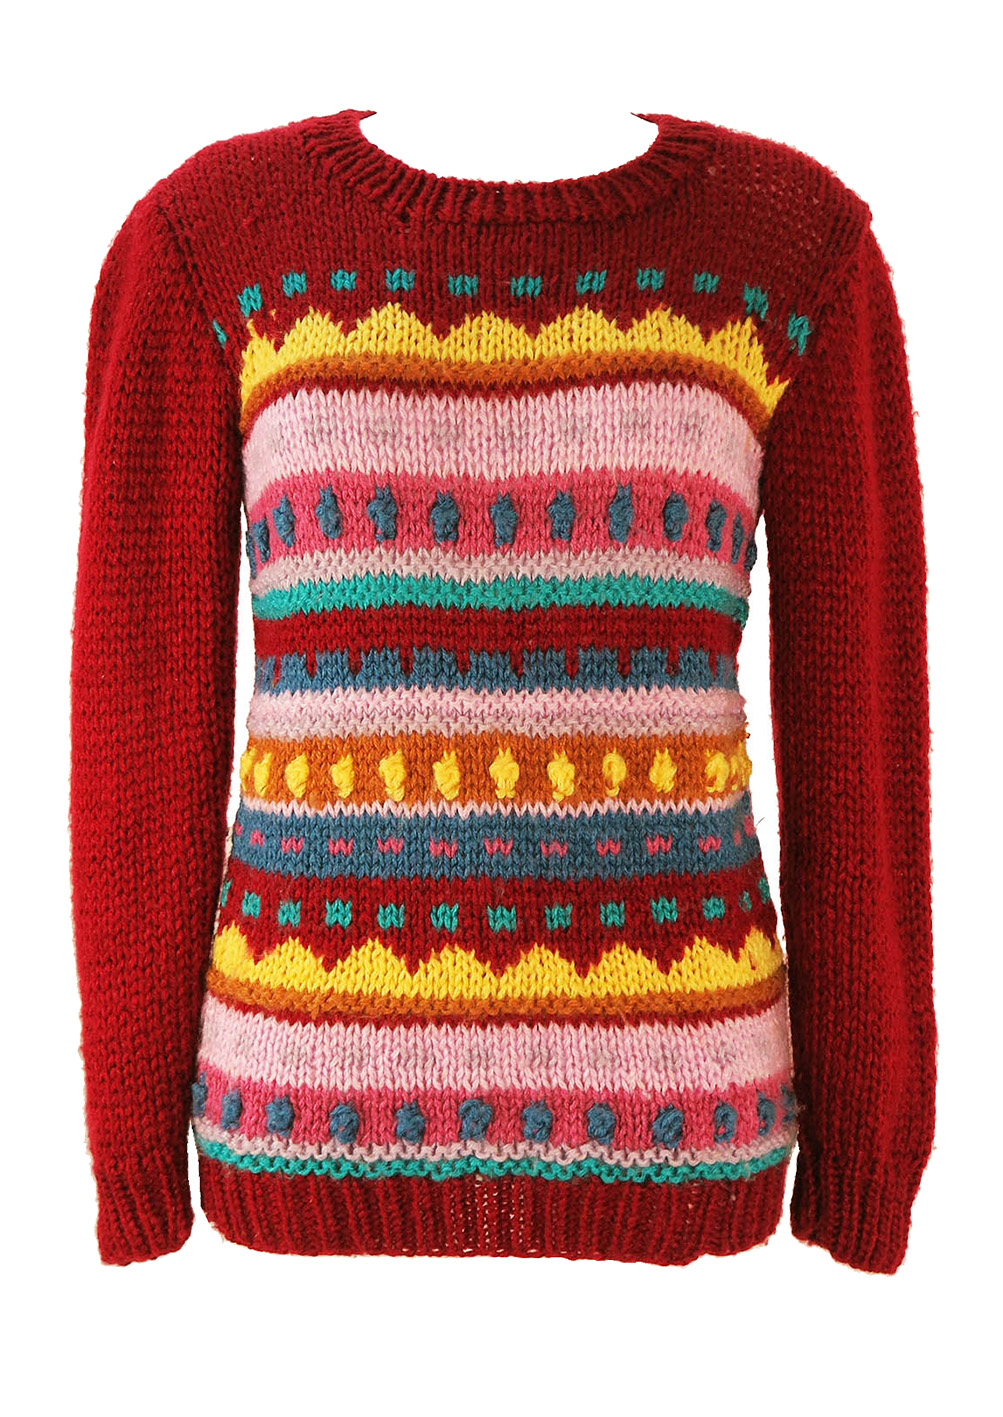 b91f1ddcbbf8fe Burgundy Knit Jumper with Multi Colour Striped Pattern – S – Reign ...